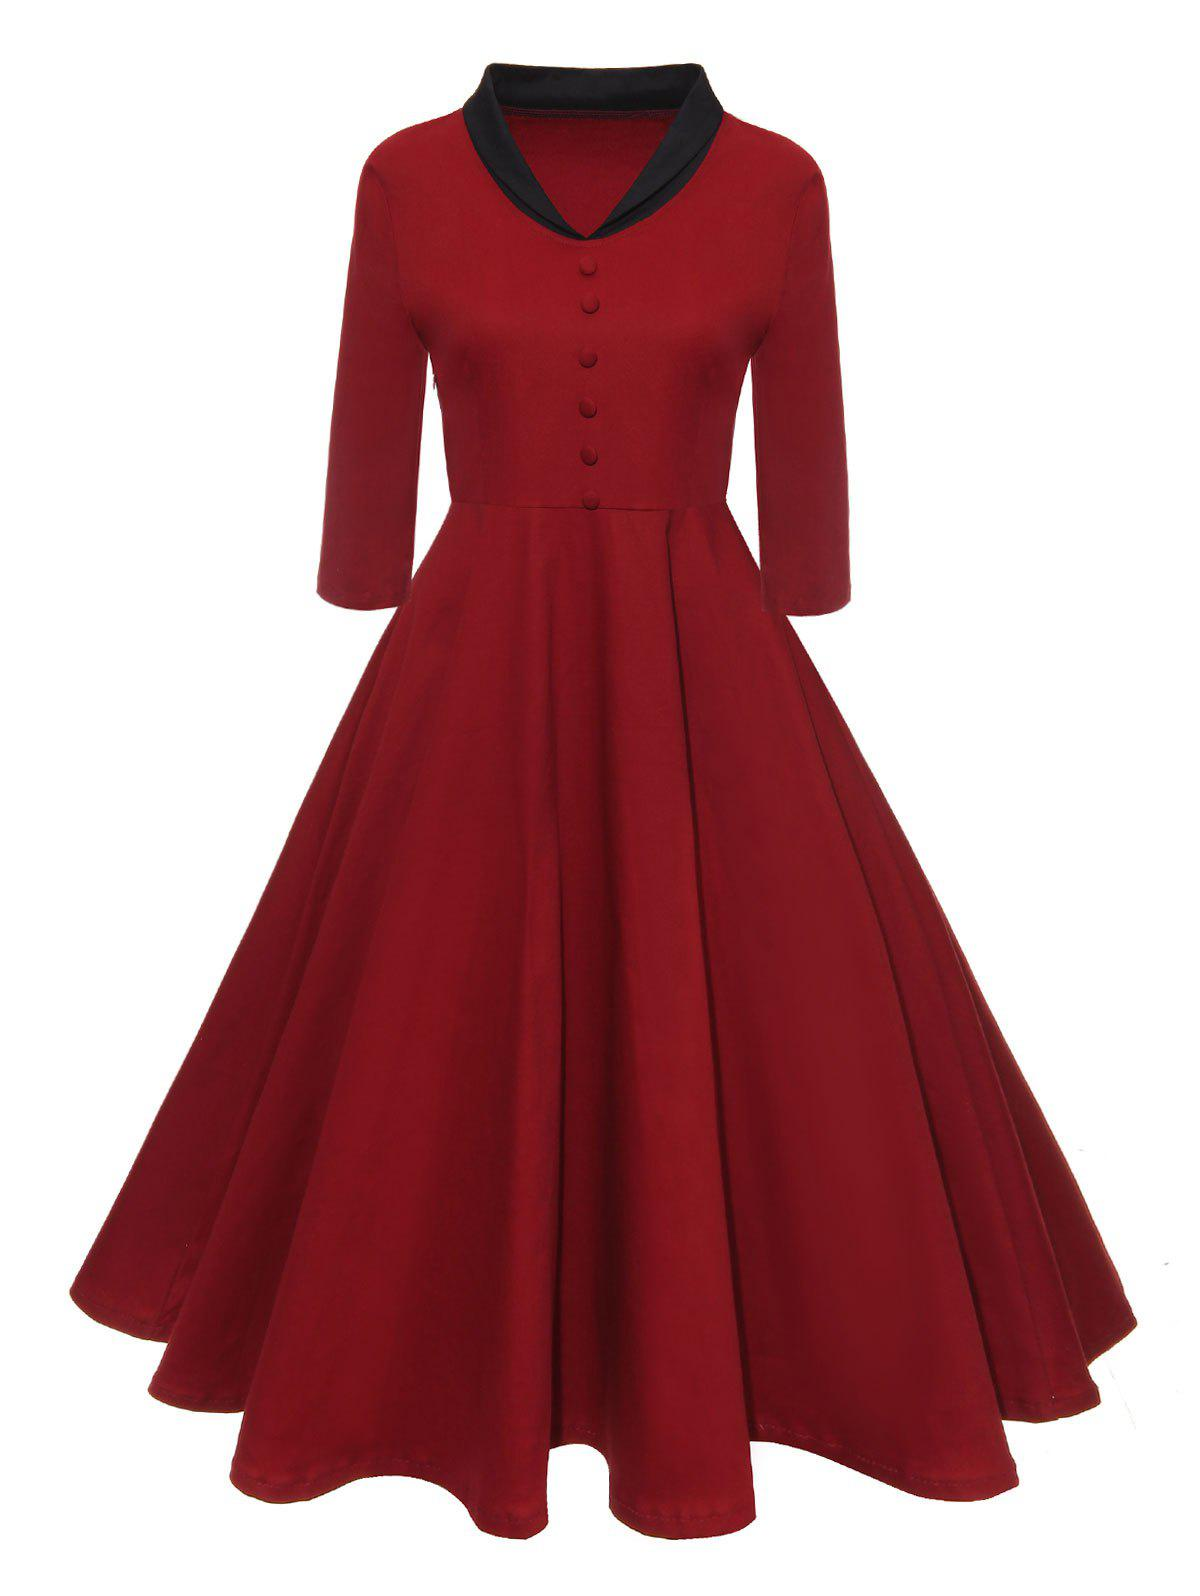 V-neck Half Button Vintage A Line DressWOMEN<br><br>Size: L; Color: RED; Style: Vintage; Material: Polyester,Spandex; Silhouette: A-Line; Dresses Length: Knee-Length; Neckline: V-Neck; Sleeve Length: 3/4 Length Sleeves; Pattern Type: Others; With Belt: No; Season: Fall,Spring; Weight: 0.3700kg; Package Contents: 1 x Dress;